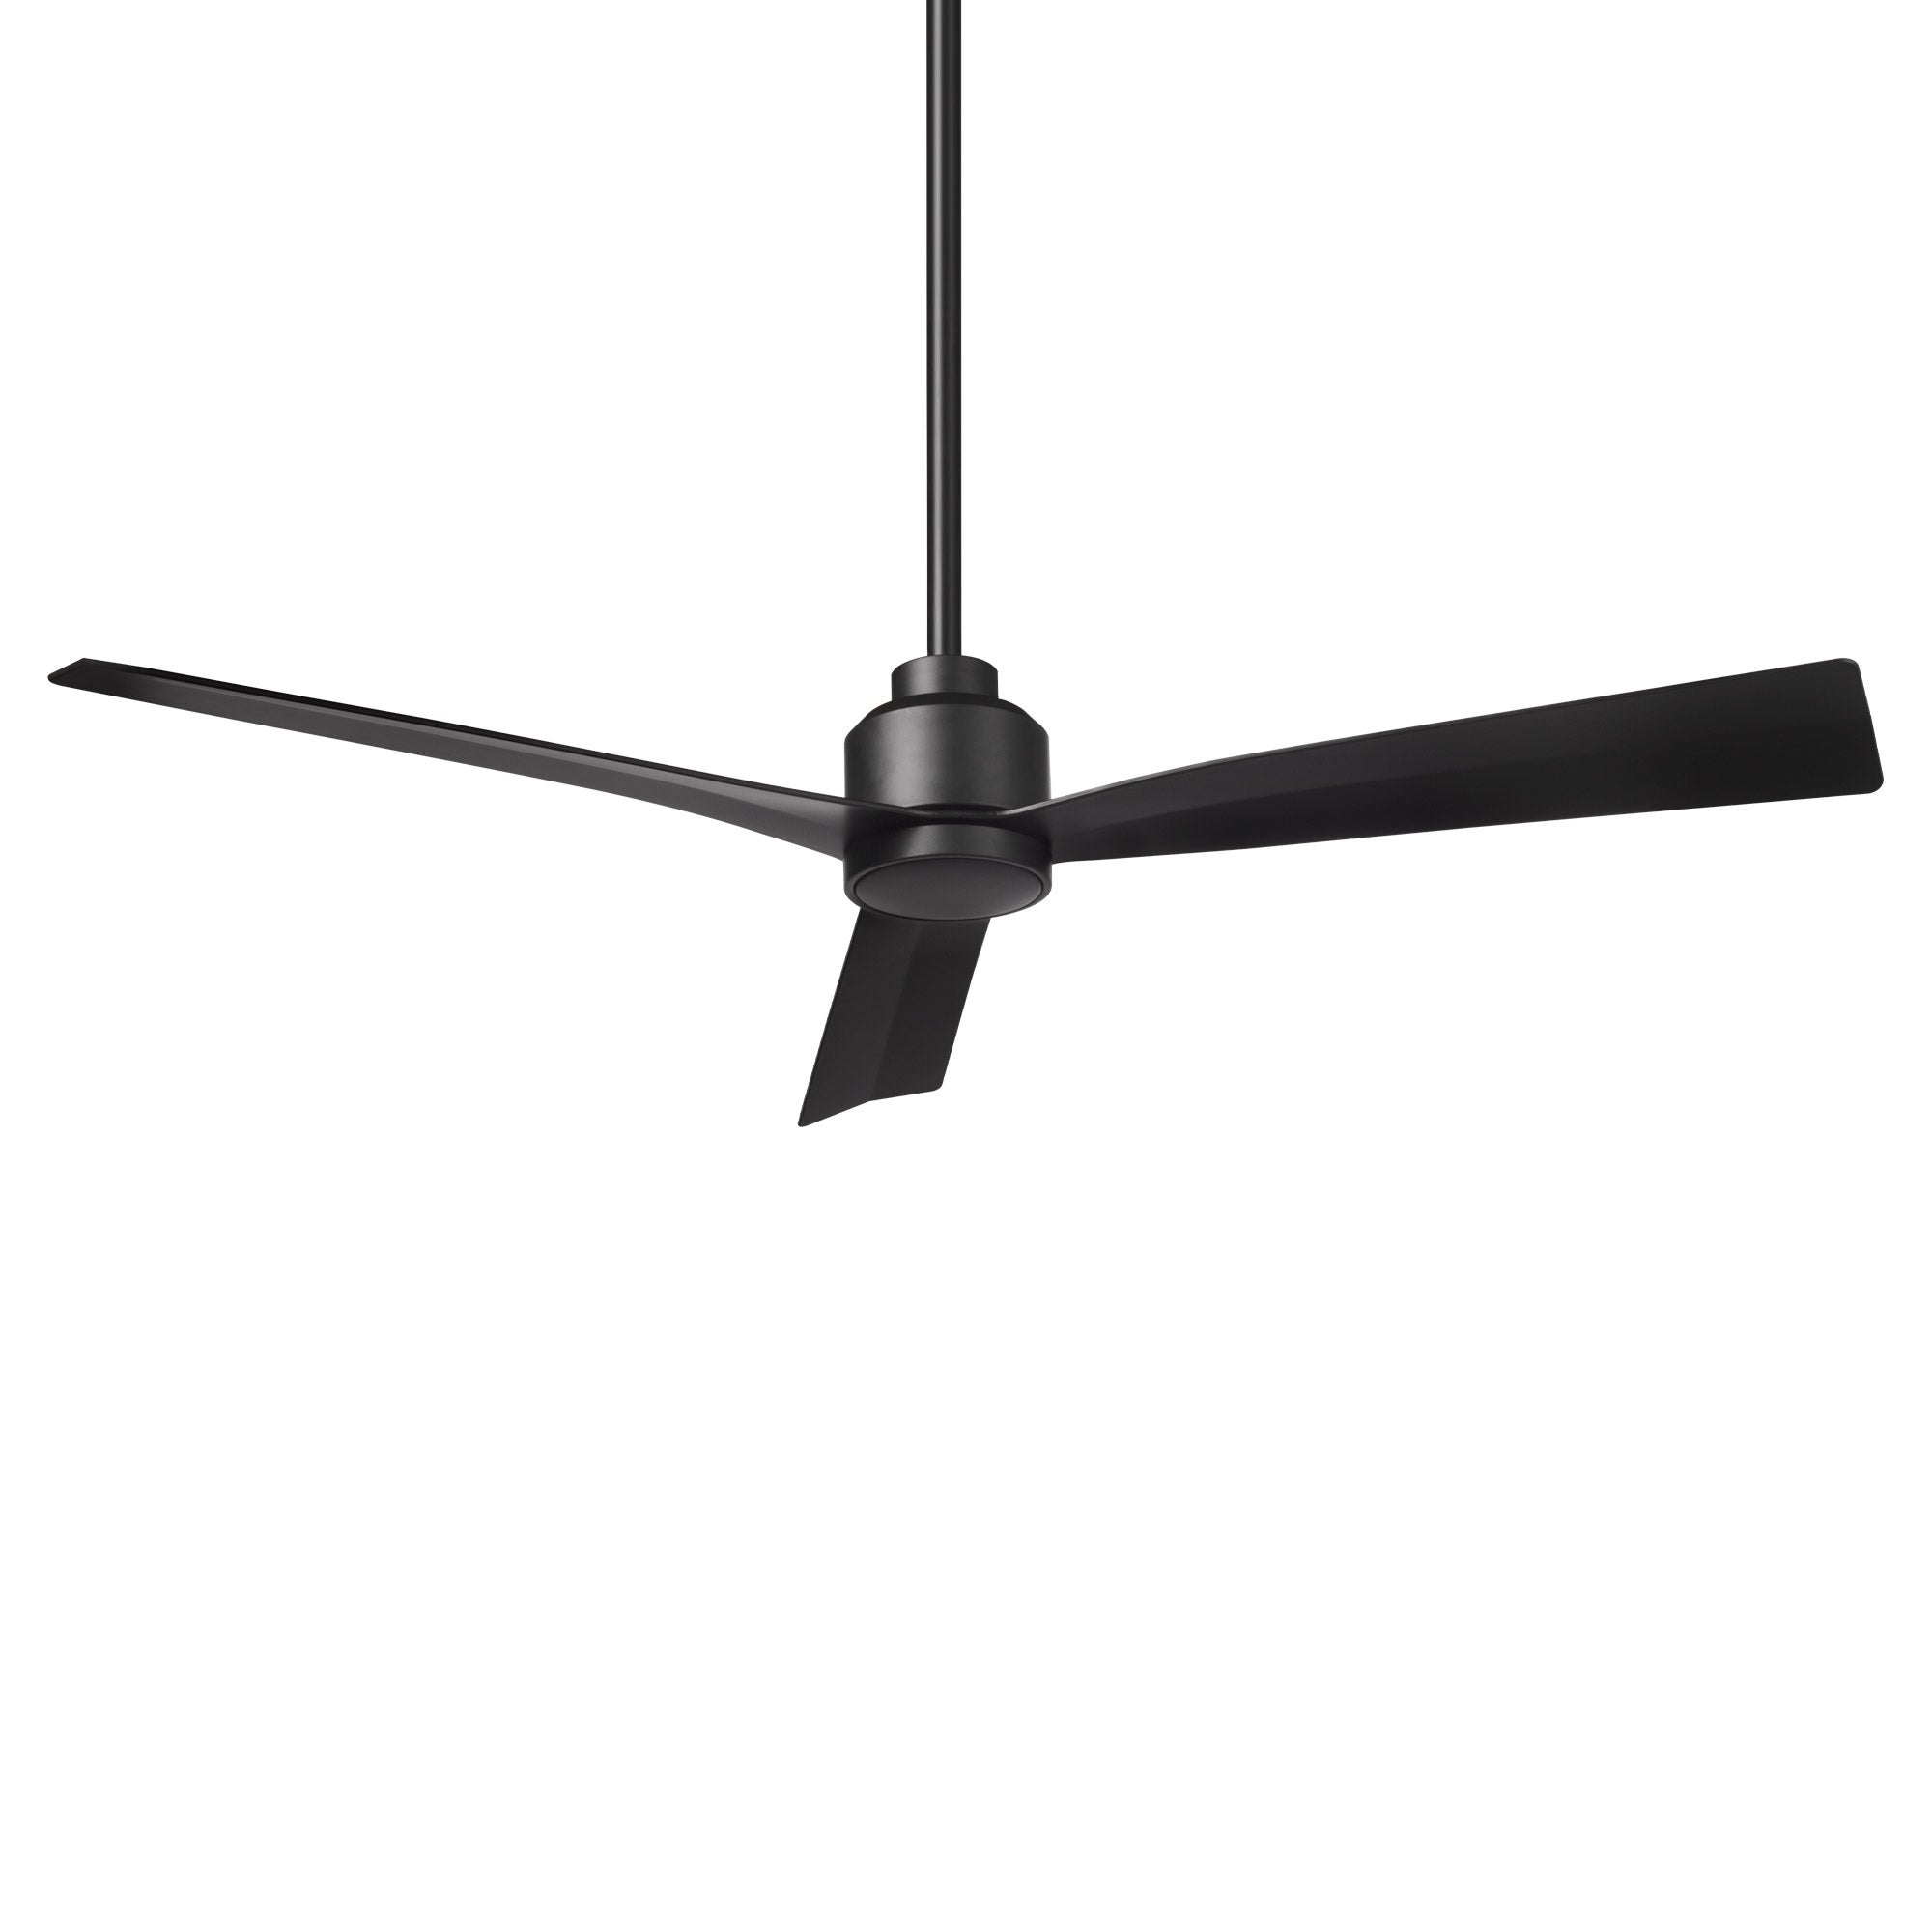 Shop Black Friday Deals On Clean Indoor And Outdoor 3 Blade 54in Smart Compatible Ceiling Fan In Matte Black With Remote Control Overstock 30981939